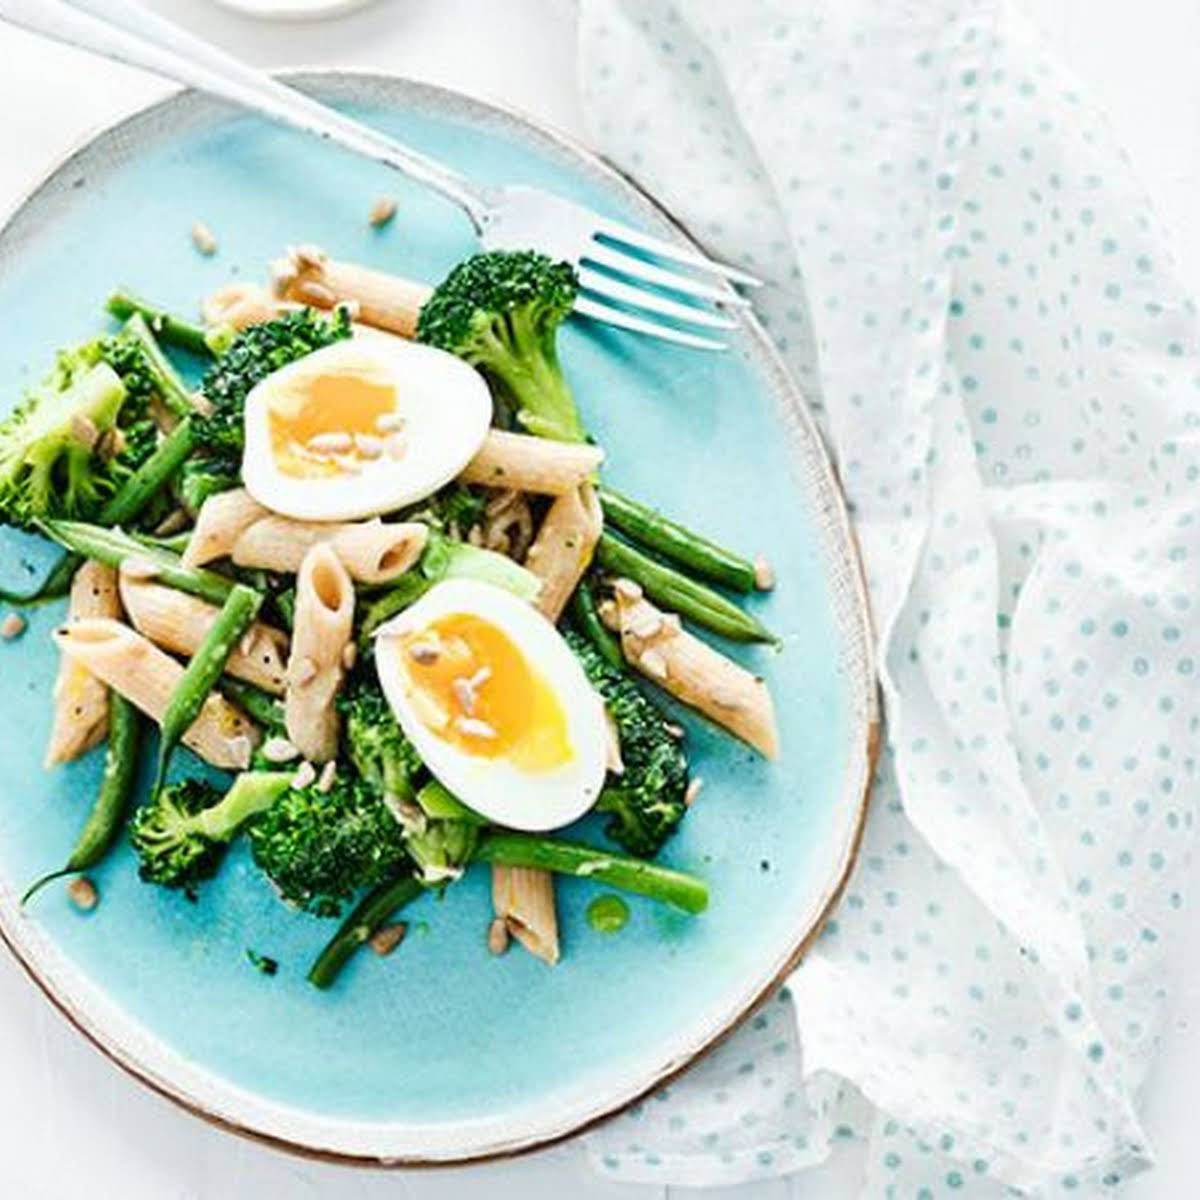 Broccoli Pasta Salad With Eggs & Sunflower Seeds